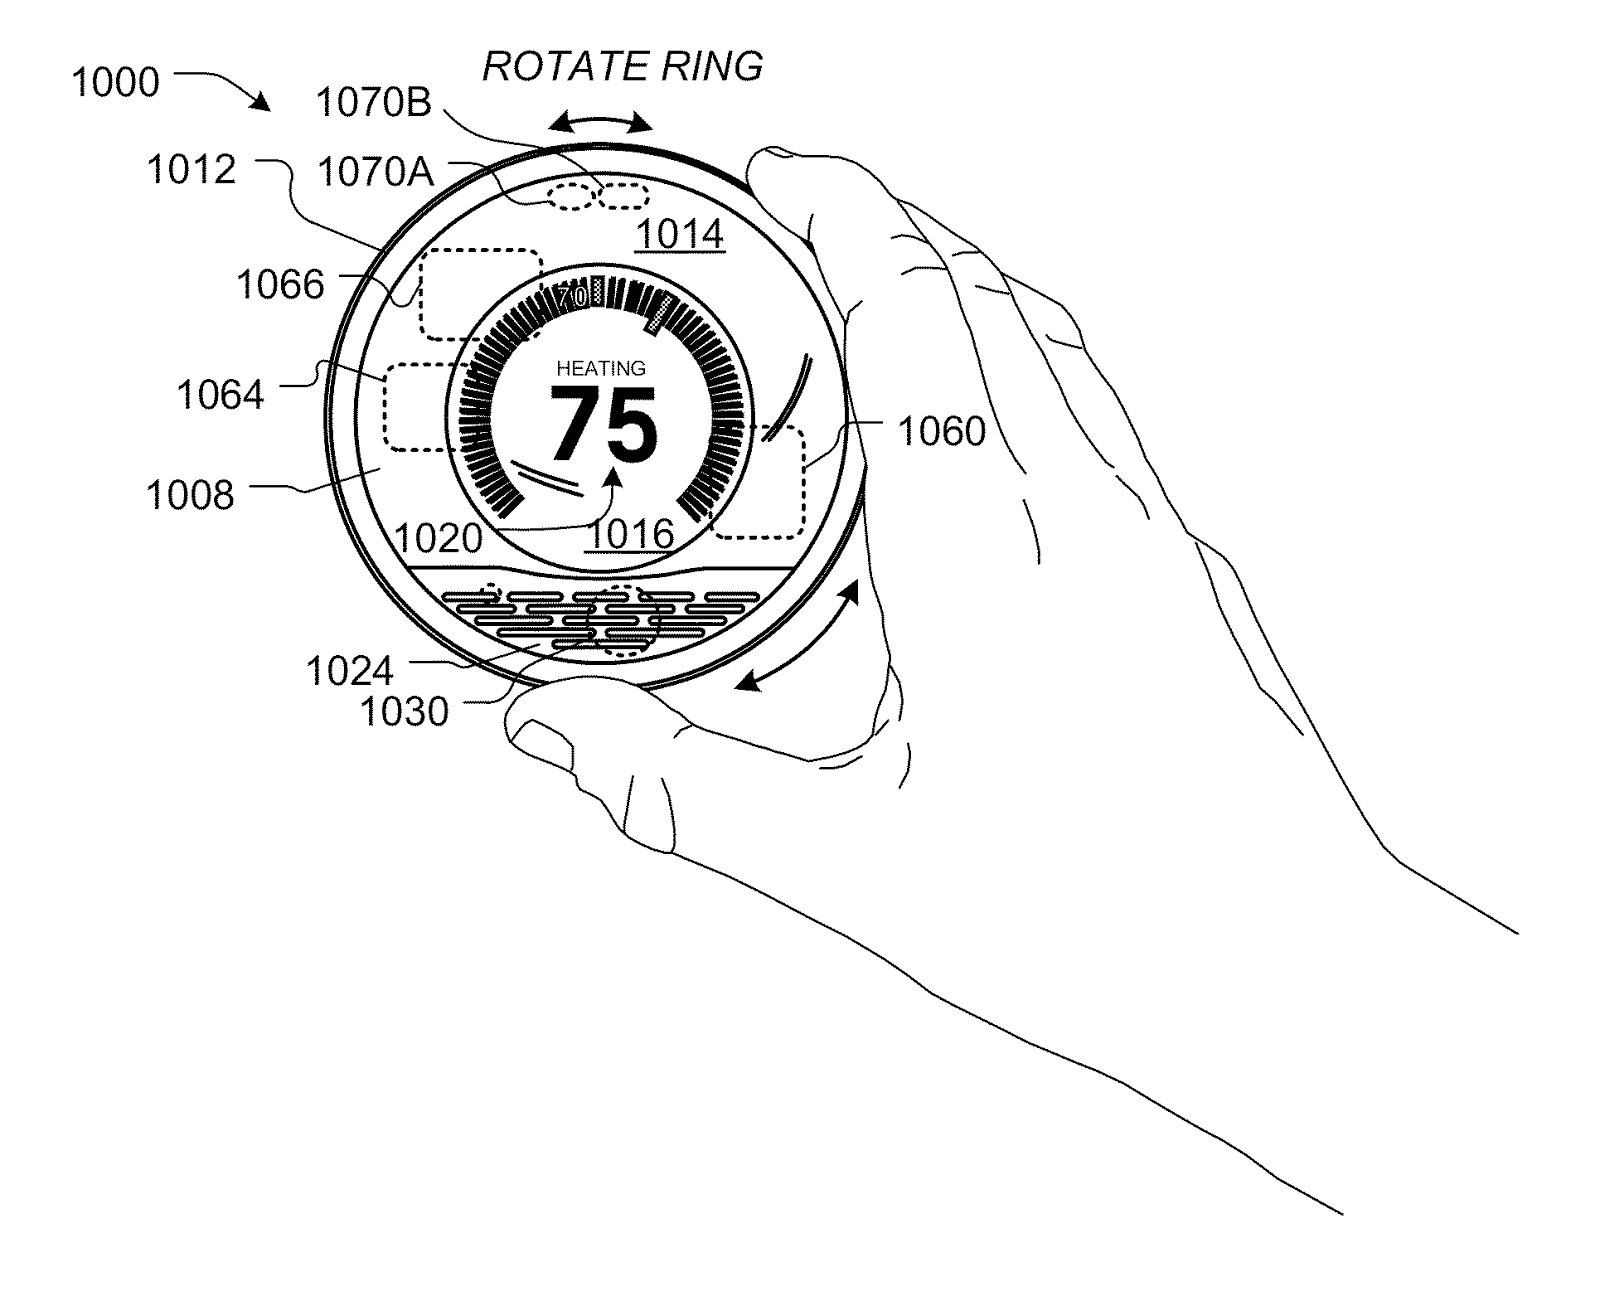 THE PATENT SEARCH BLOG: Nest Labs' patents